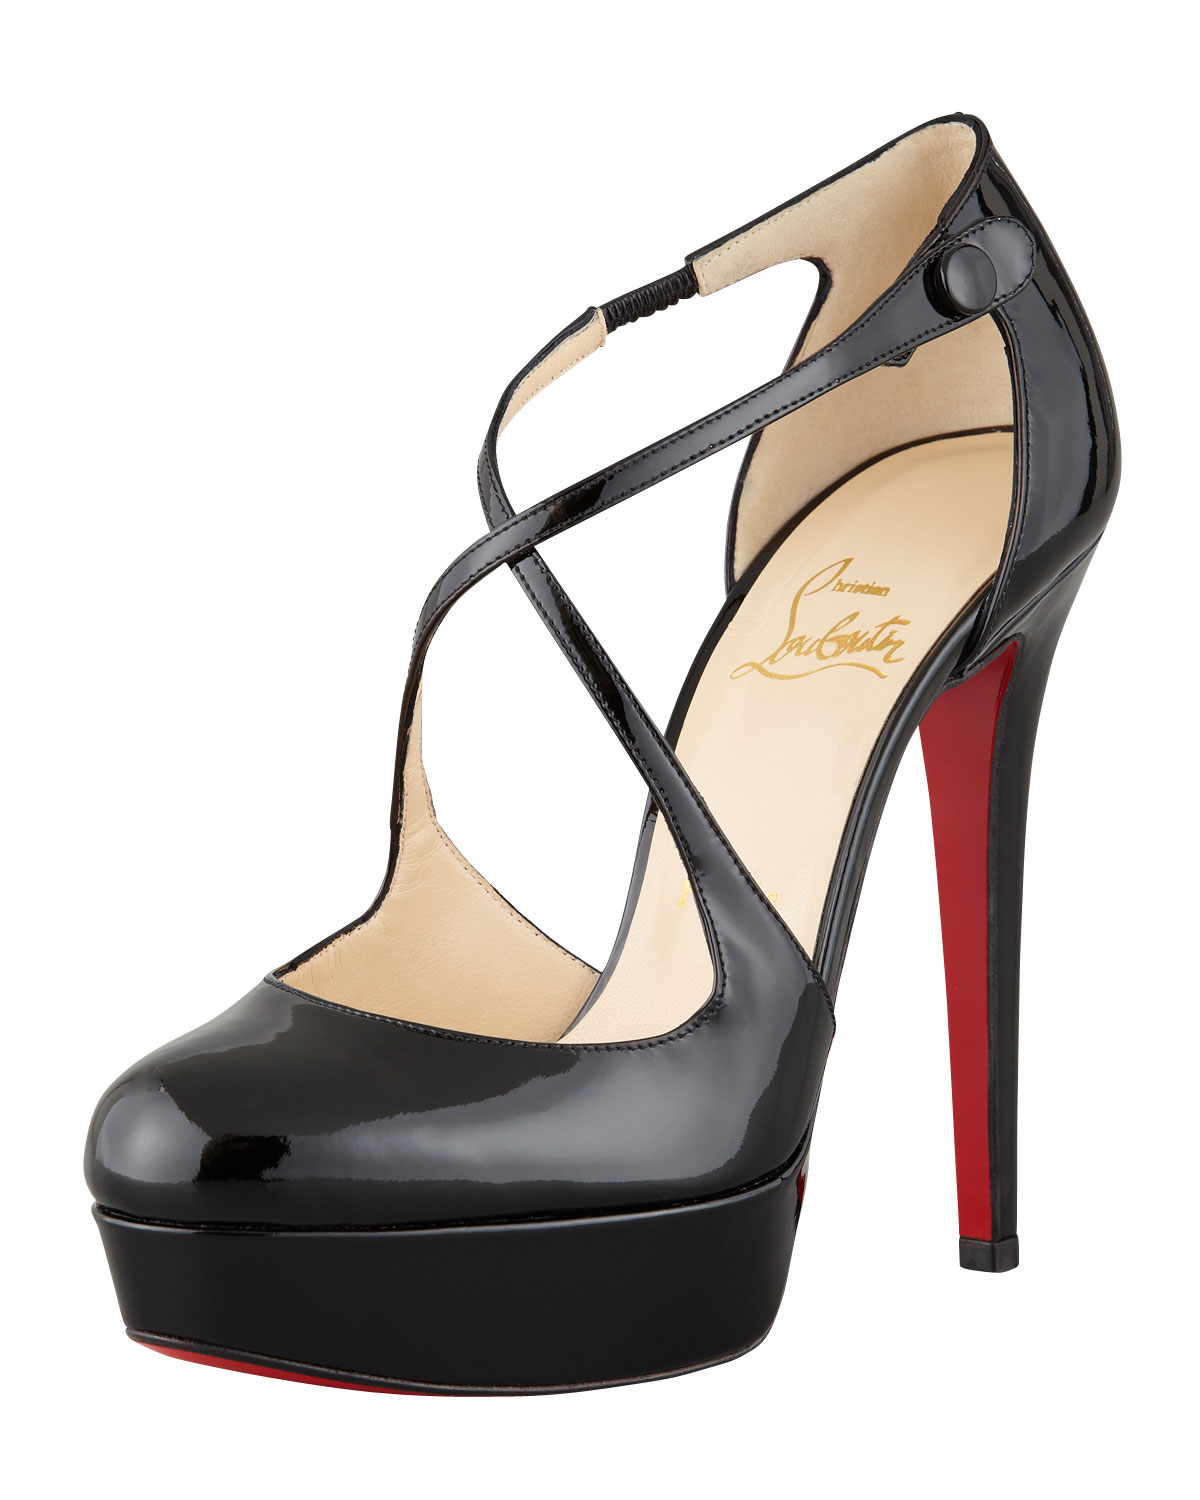 2bd5d1f8493d Lyst - Christian Louboutin Borghese Patent Platform Red Sole Pump in ...